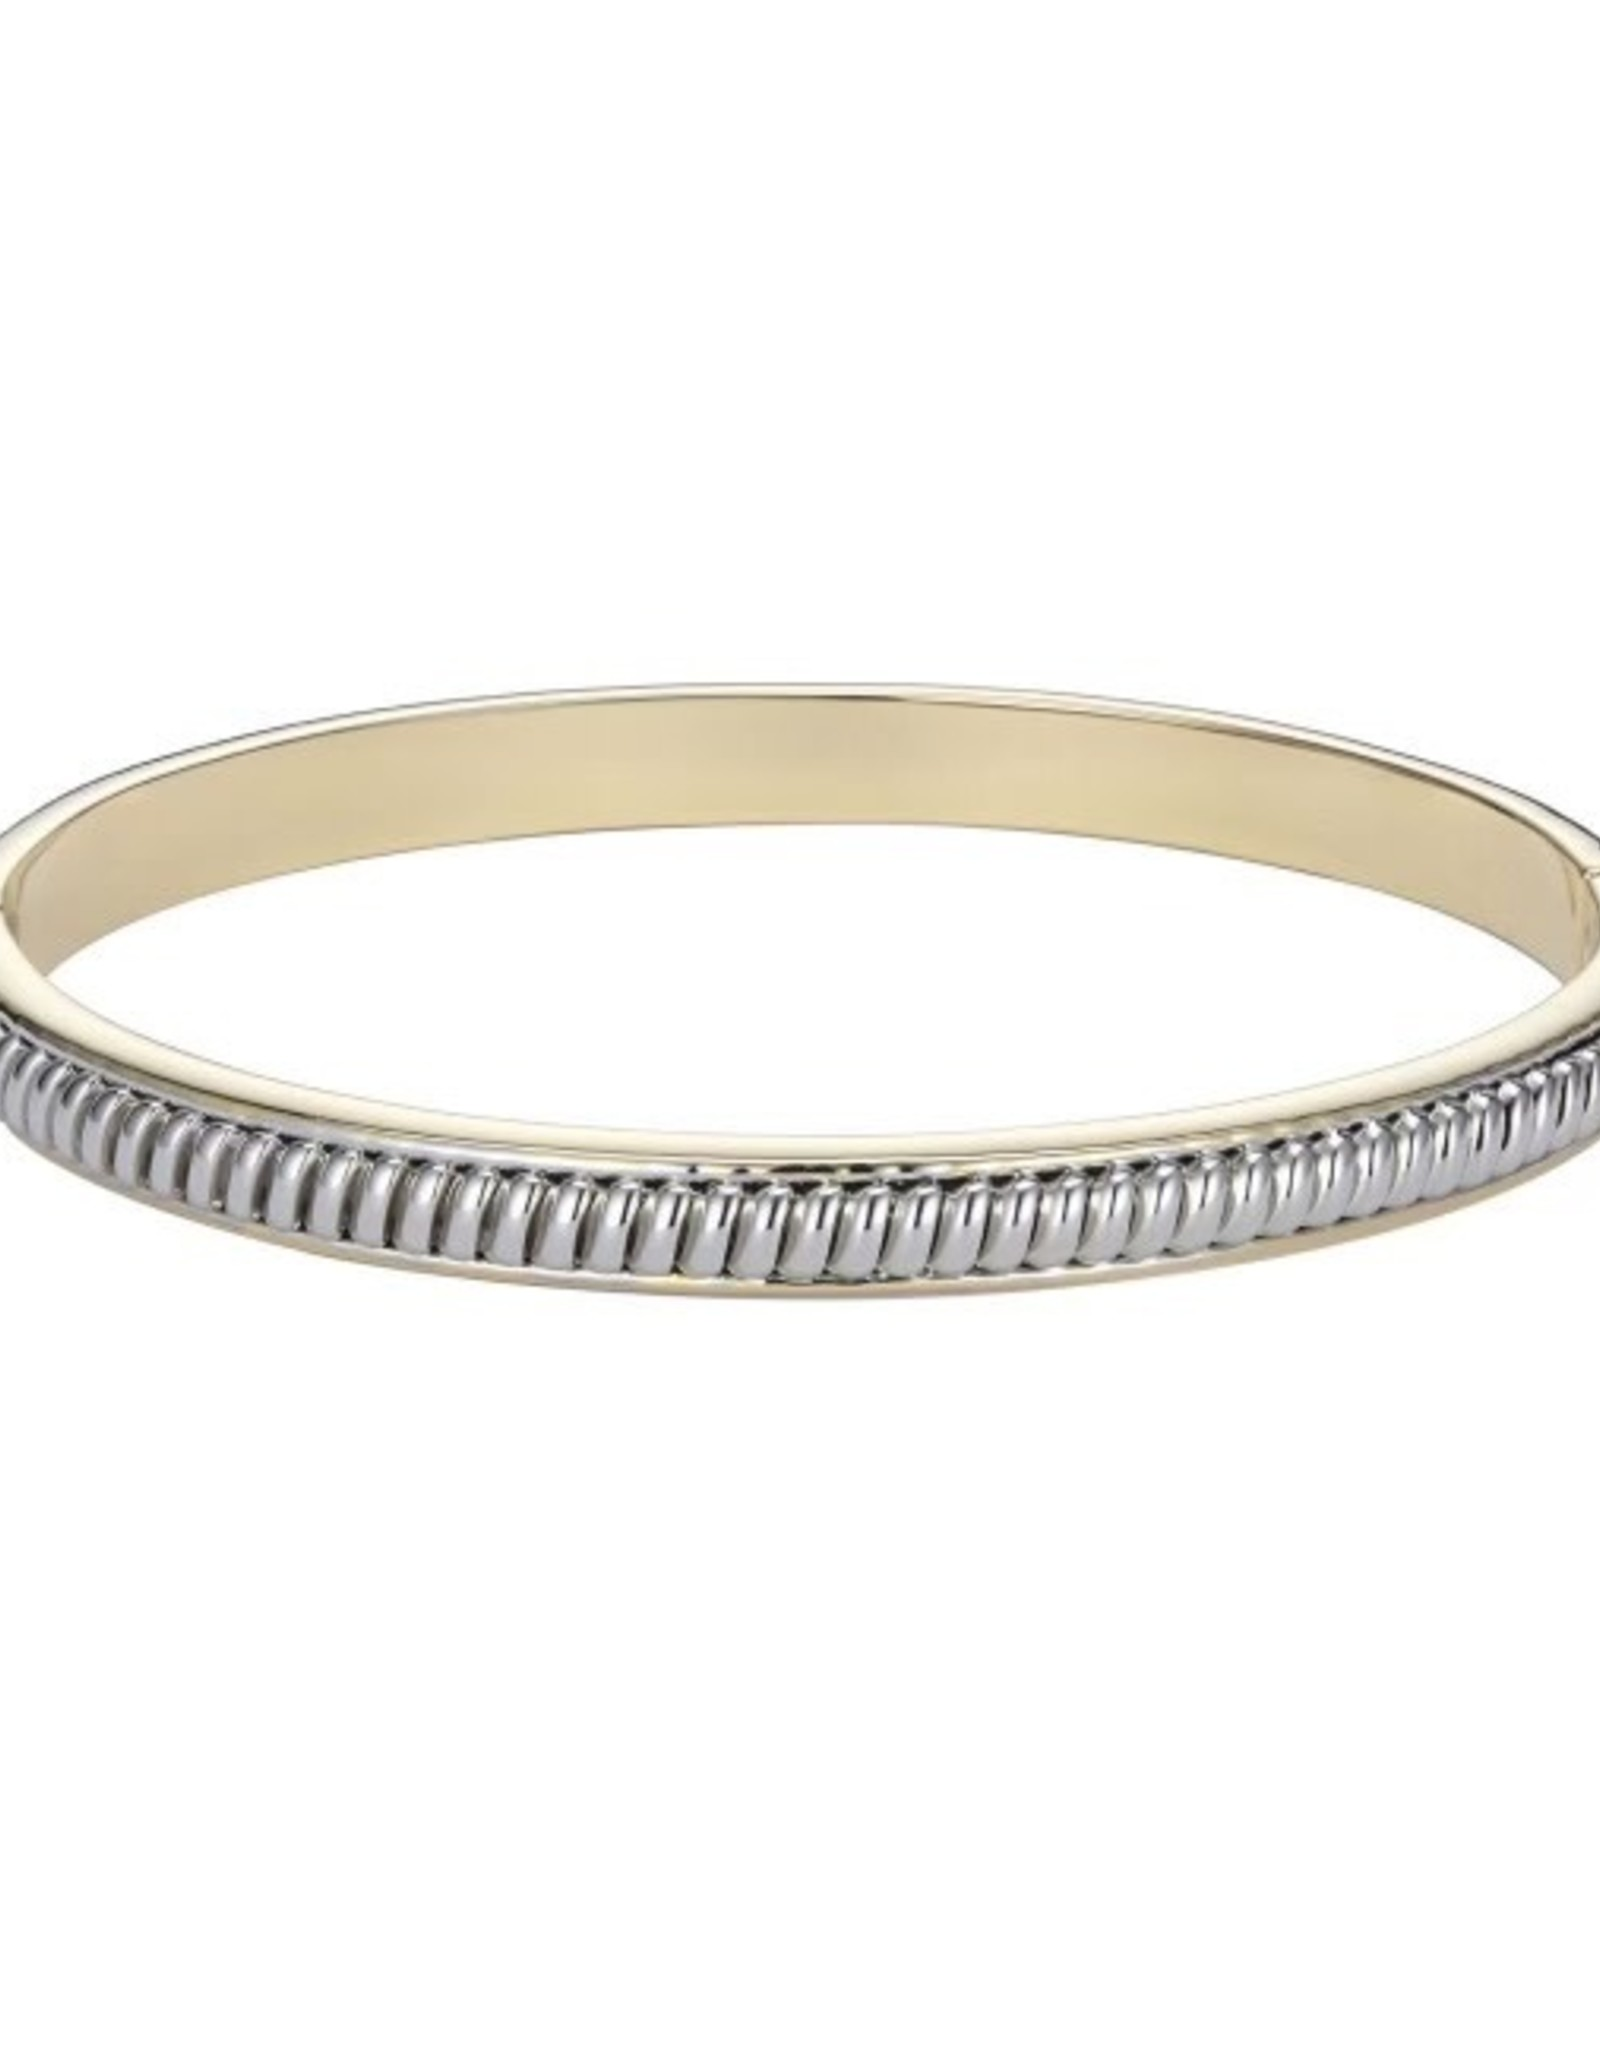 Gold and Silver Clasp Bangle Bracelet